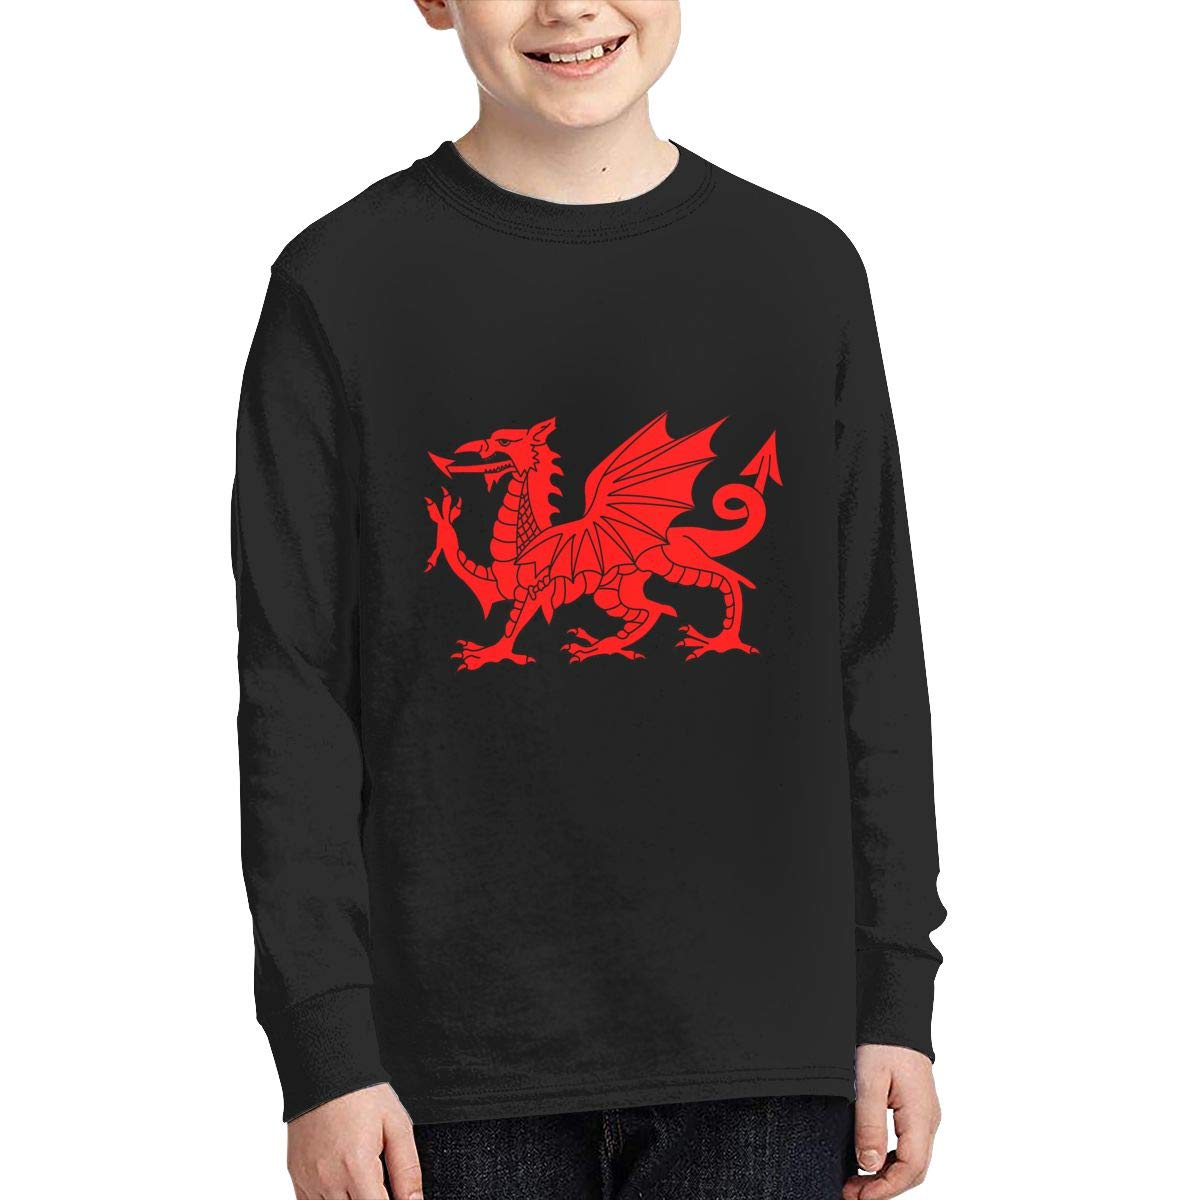 Welsh Dragon Teens Boy Shirt Girl T Shirt Fashion Cute Long Sleeve Round Neck Teen Shirt Cotton 100% BCFJANC